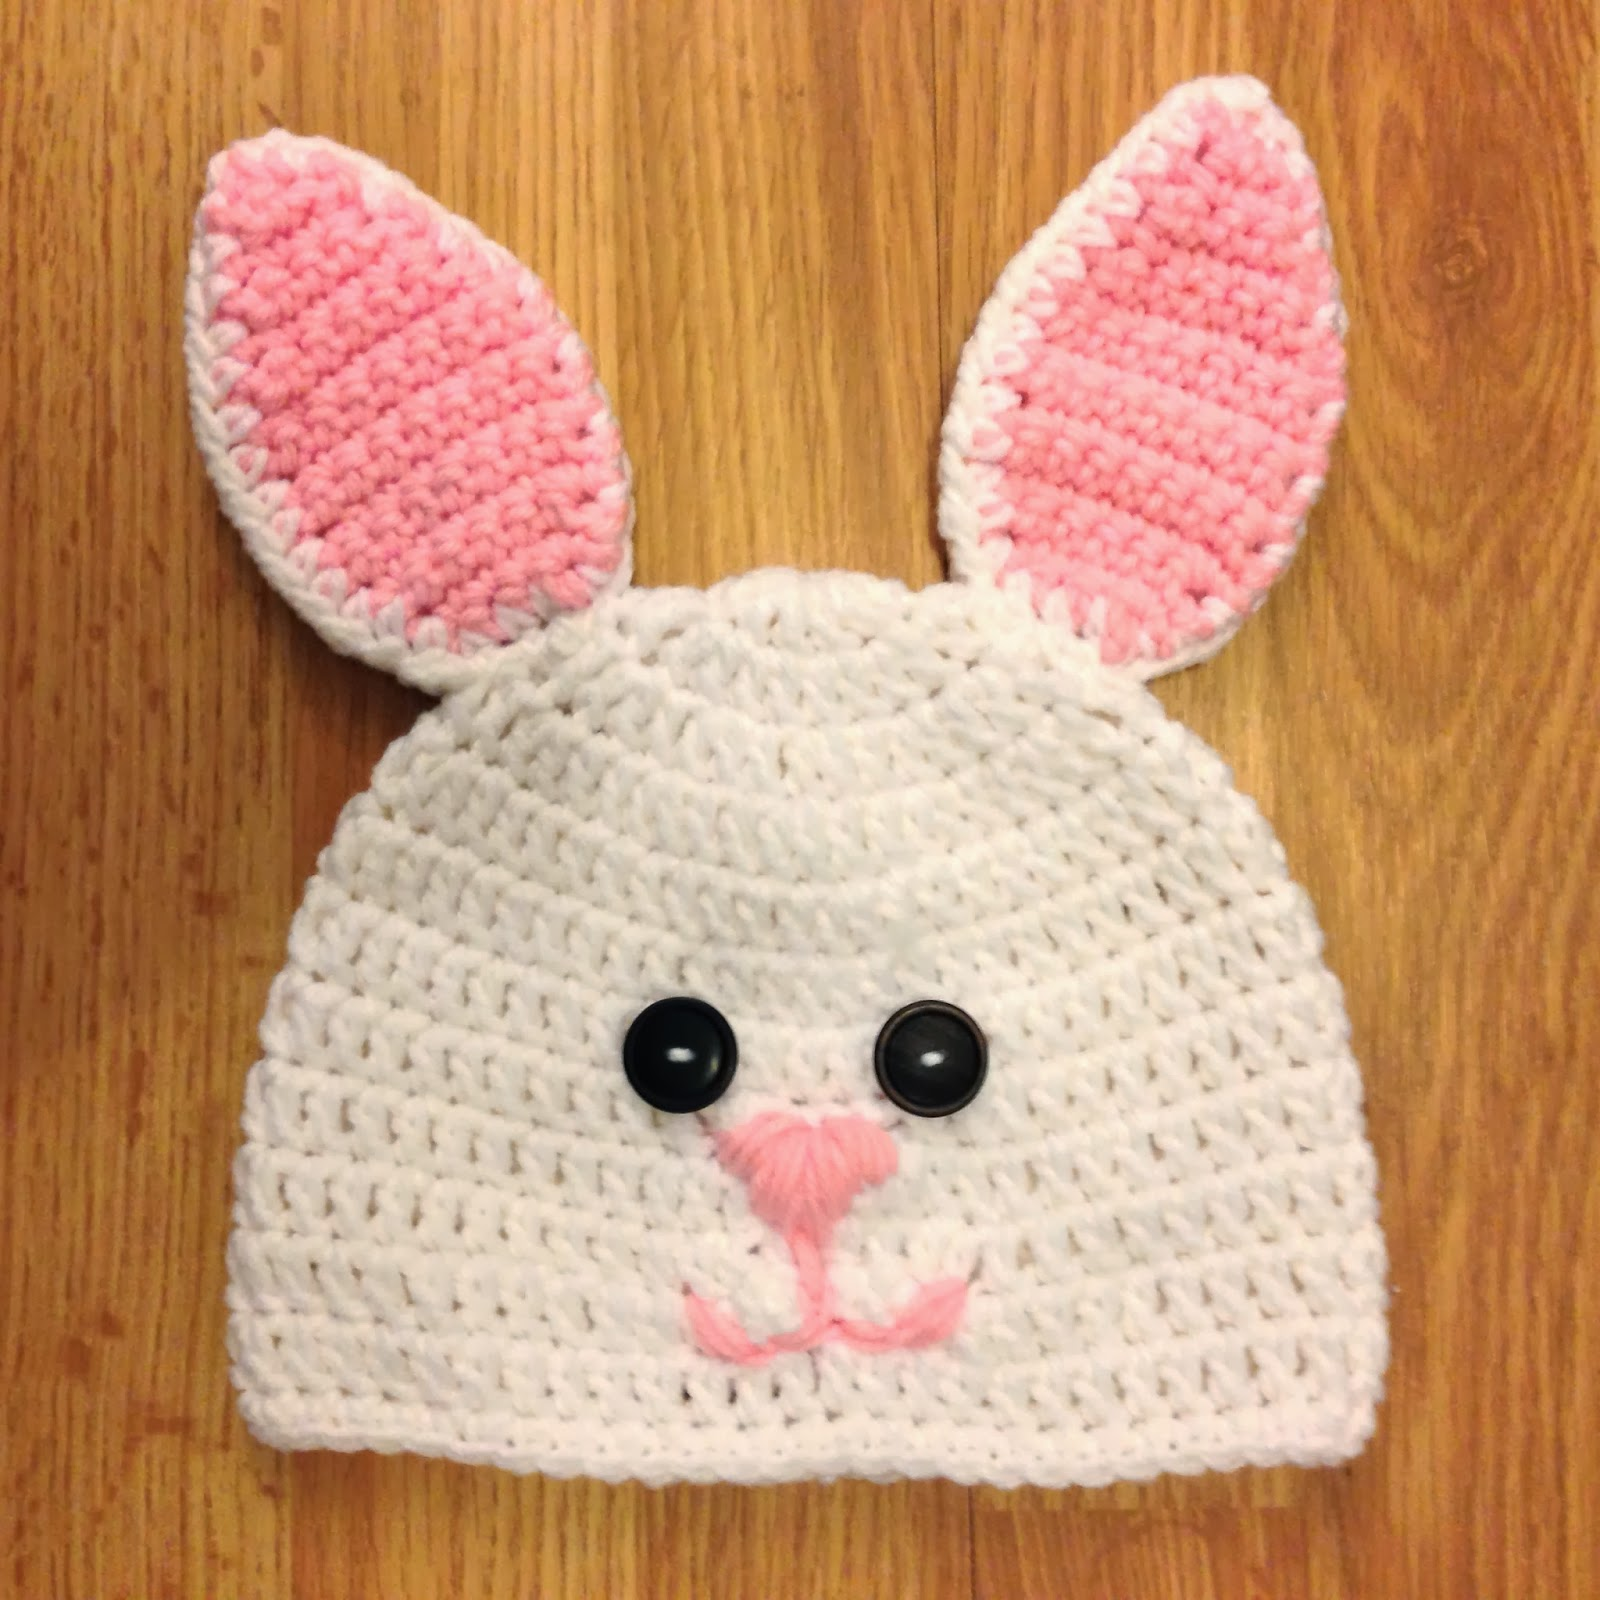 A project I recently finished is this adorable Crochet Bunny Hat using a  pattern I found on Repeat Crafter Me. cb9f7bac31c7